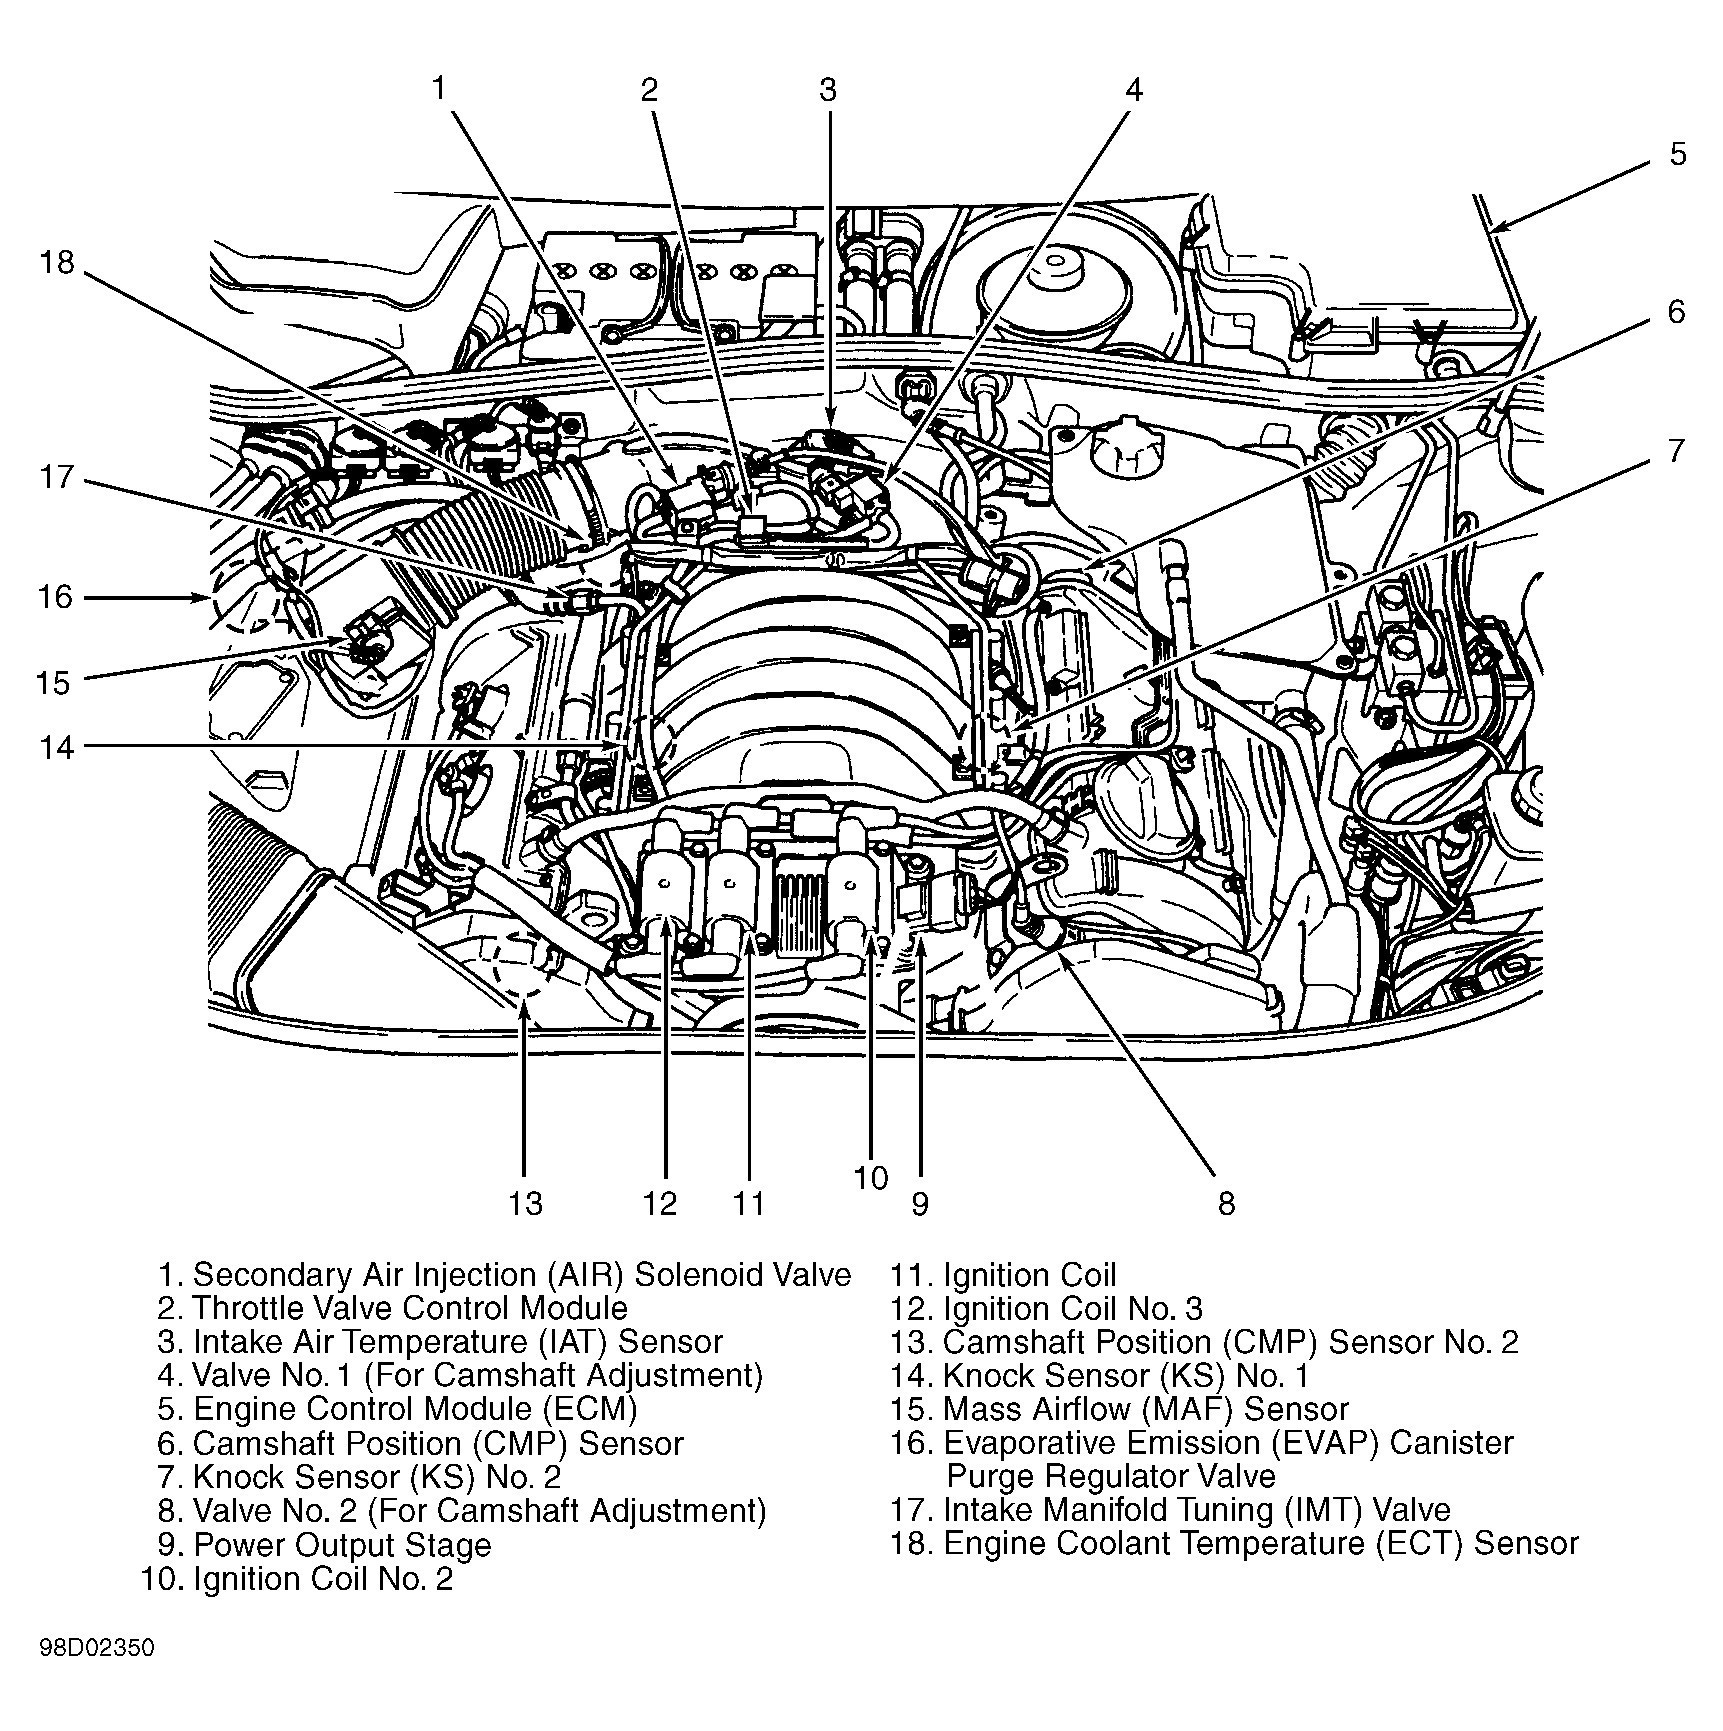 Coolant Engine Diagram | Wiring Diagram